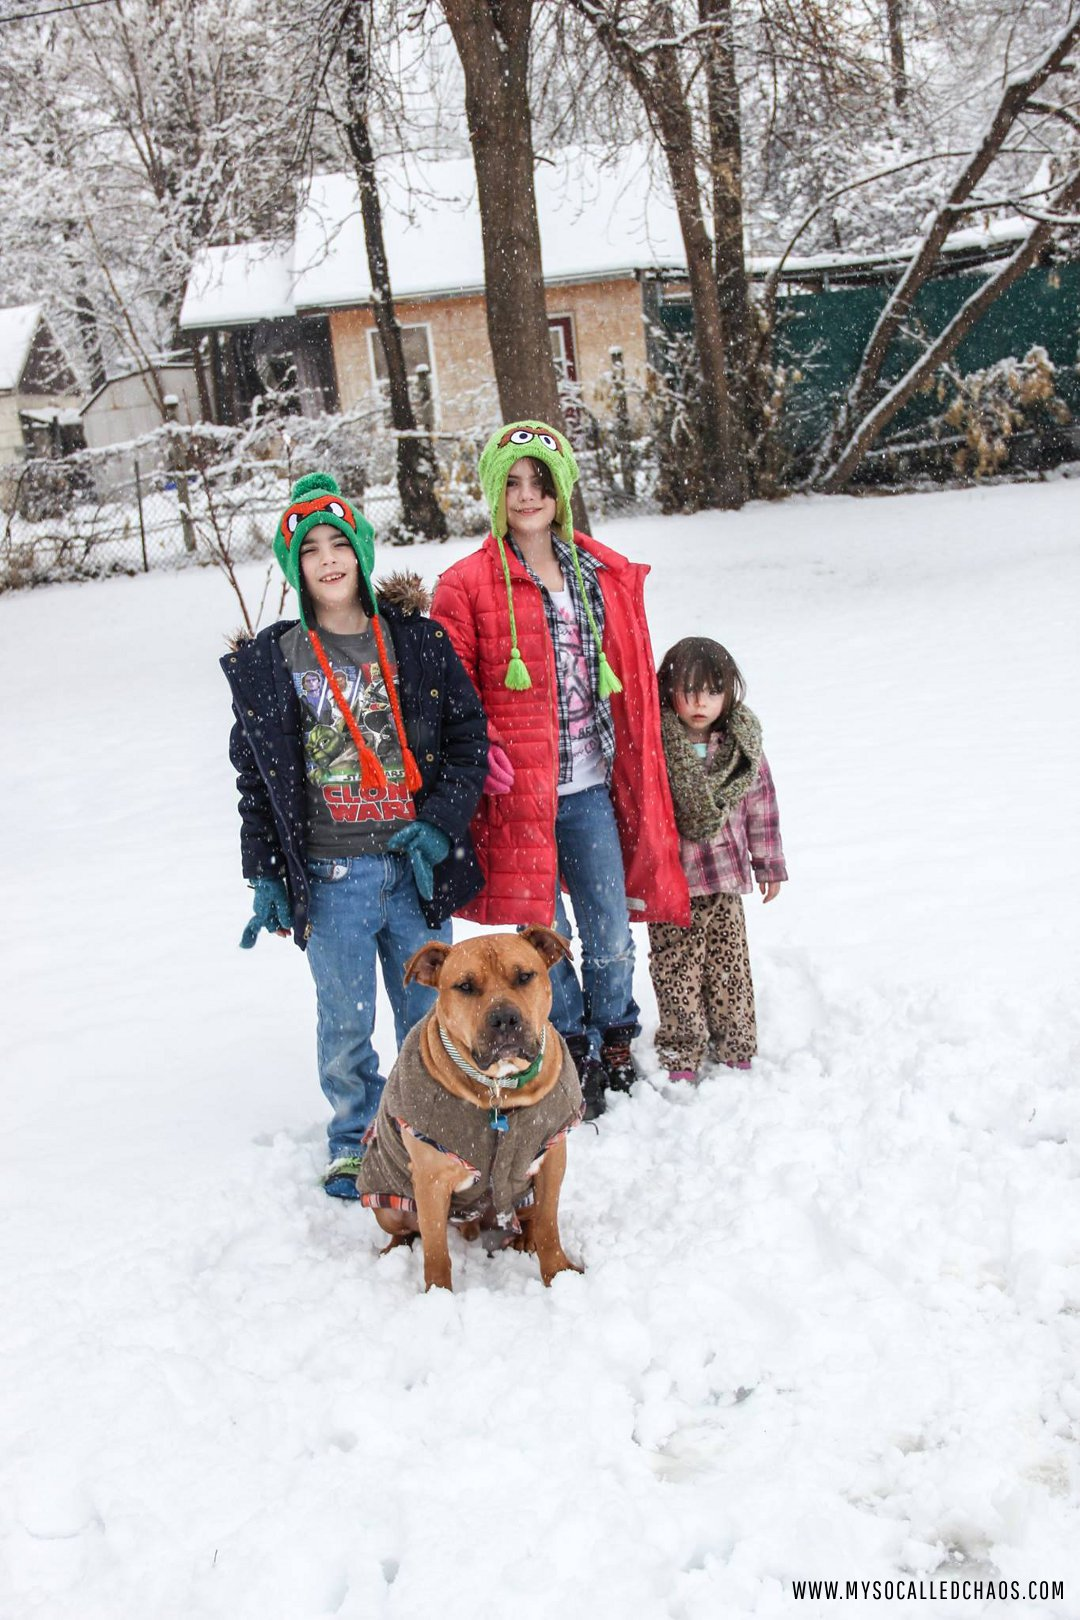 The godkids and Handsome Bub in the Snow